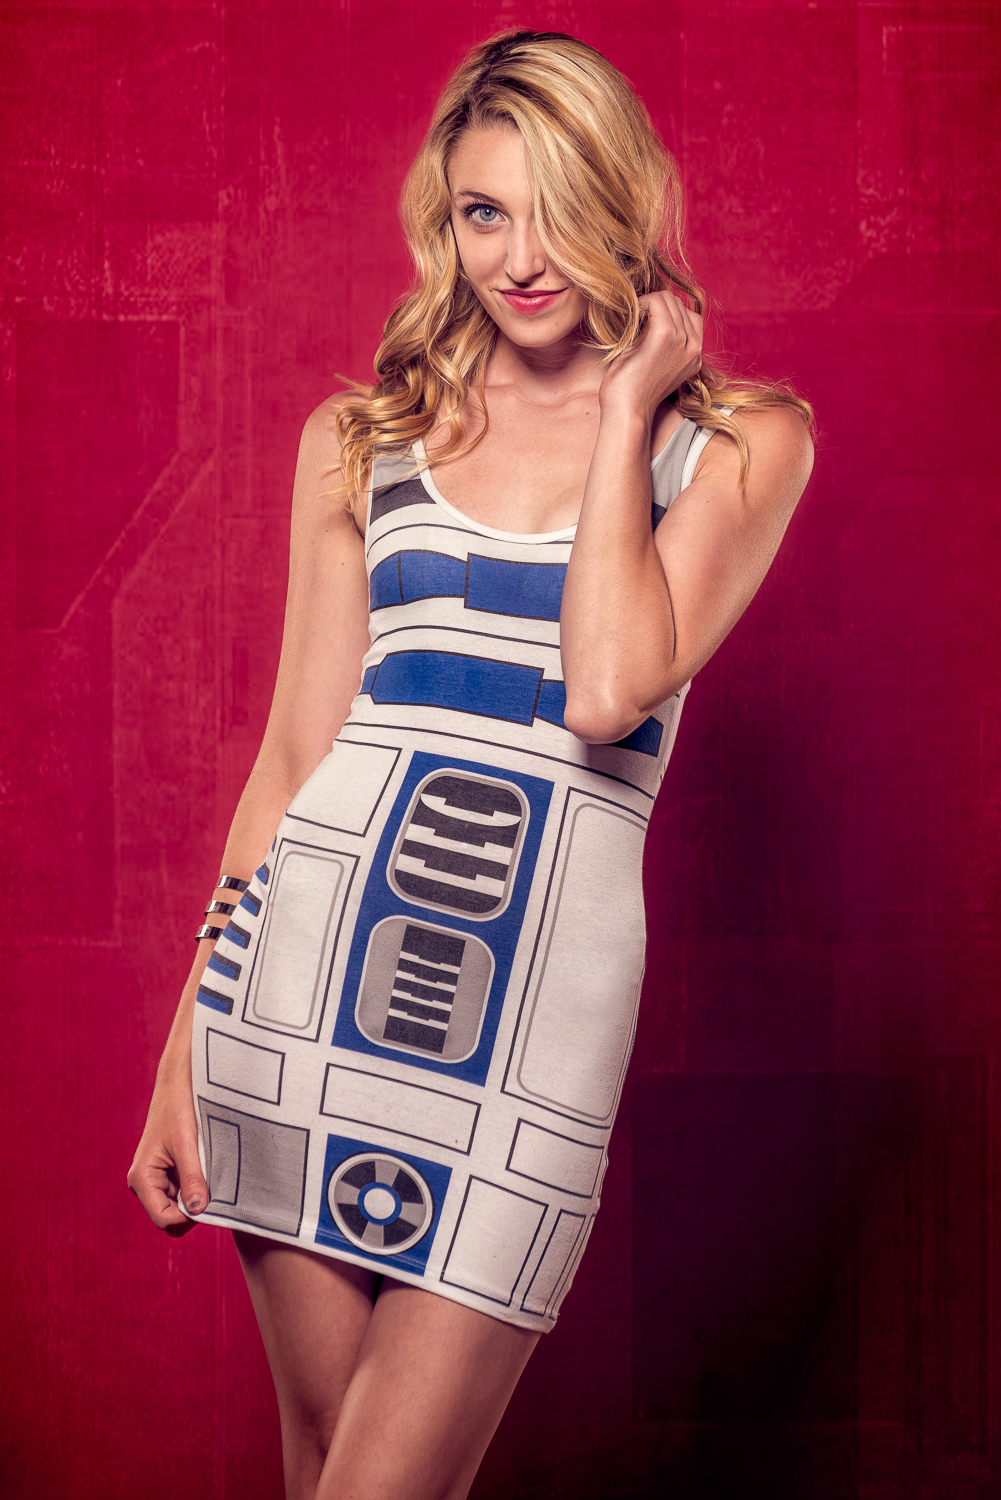 Aleah McCallum - Marek Michalek Photography R2-D2 Star Wars Dress.jpg